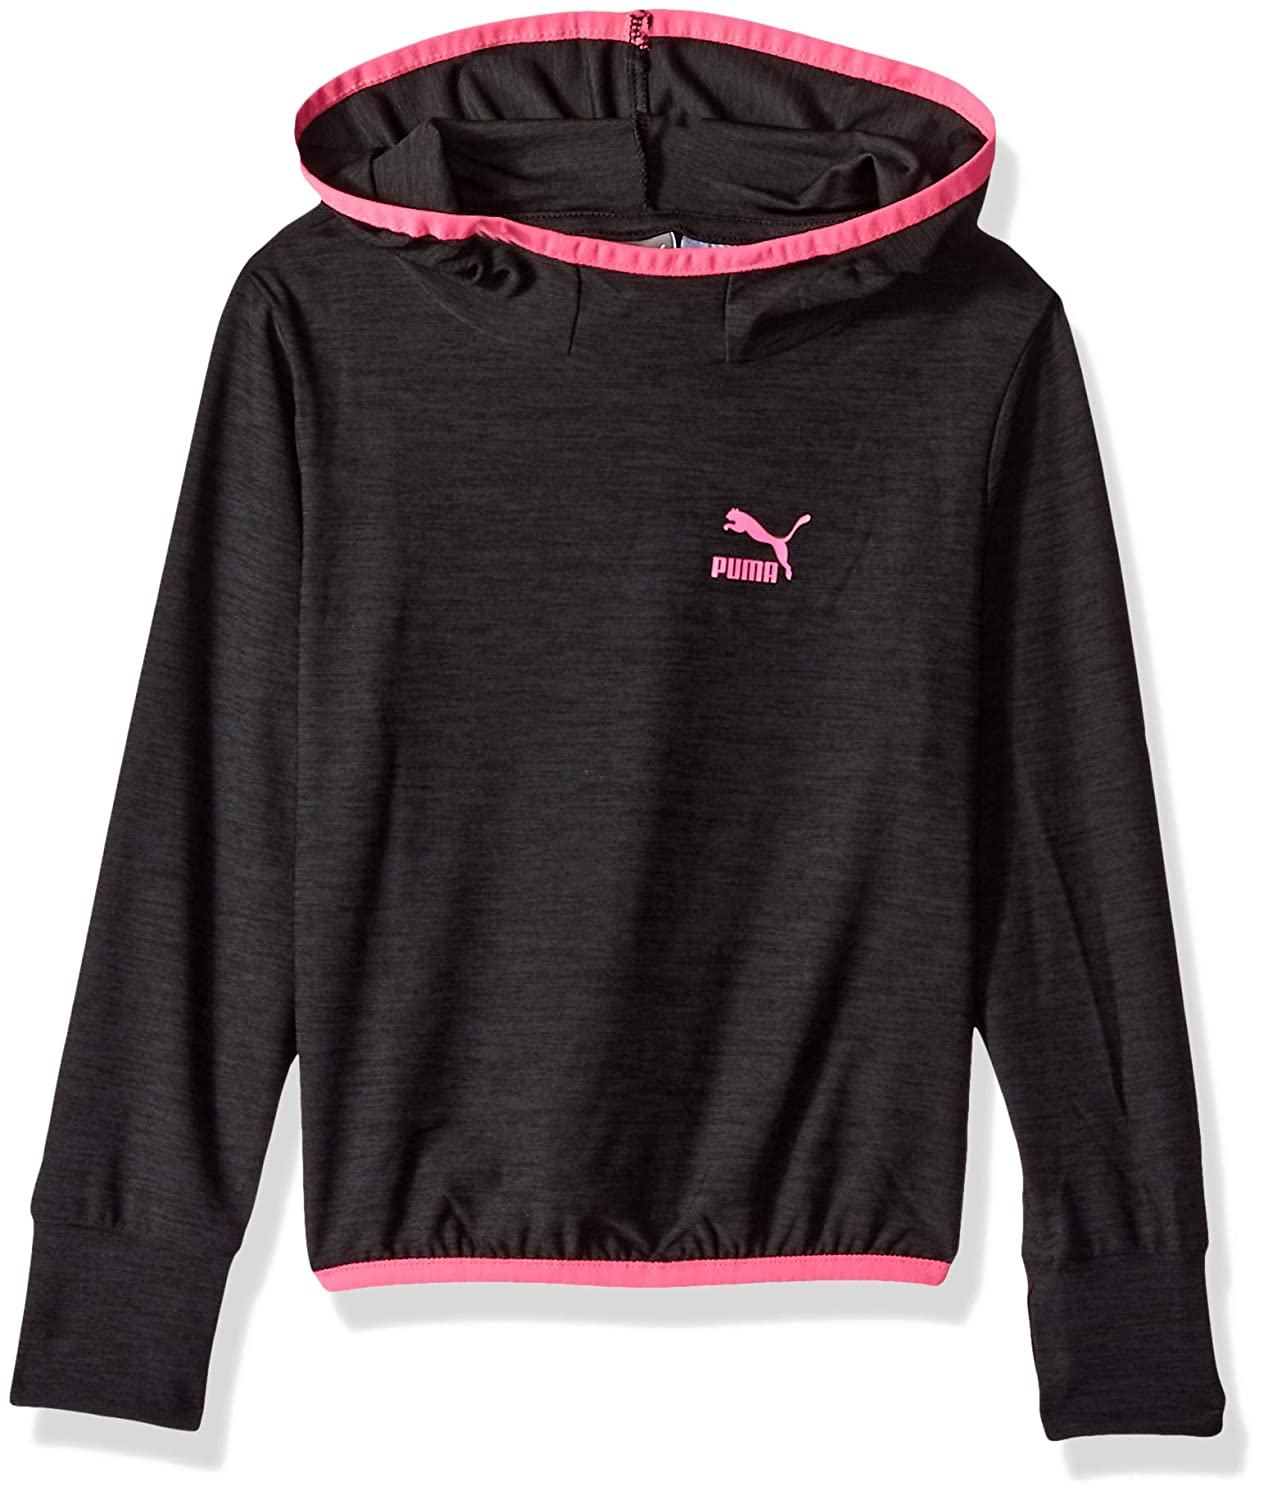 PUMA Toddler Girls Cropped Hoodie